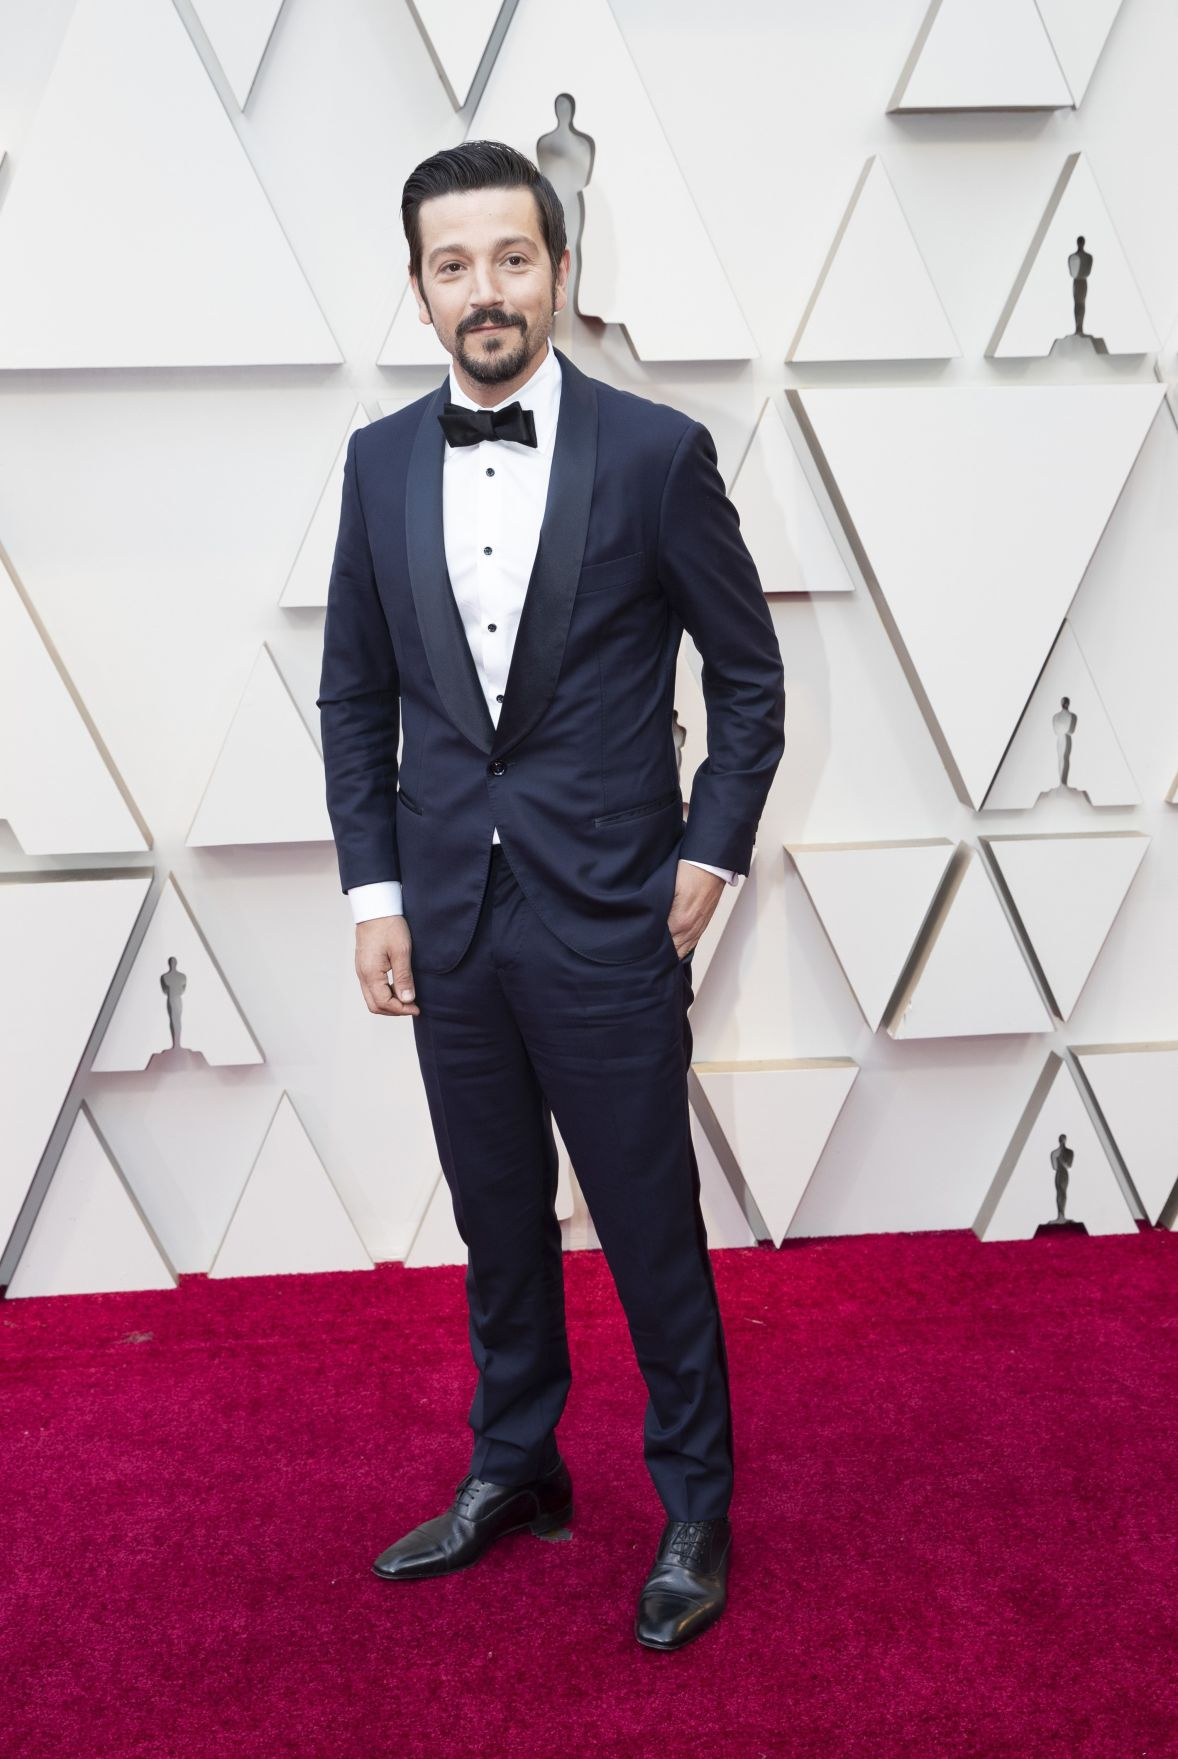 Oscars spread wealth on night marked by inclusiveness